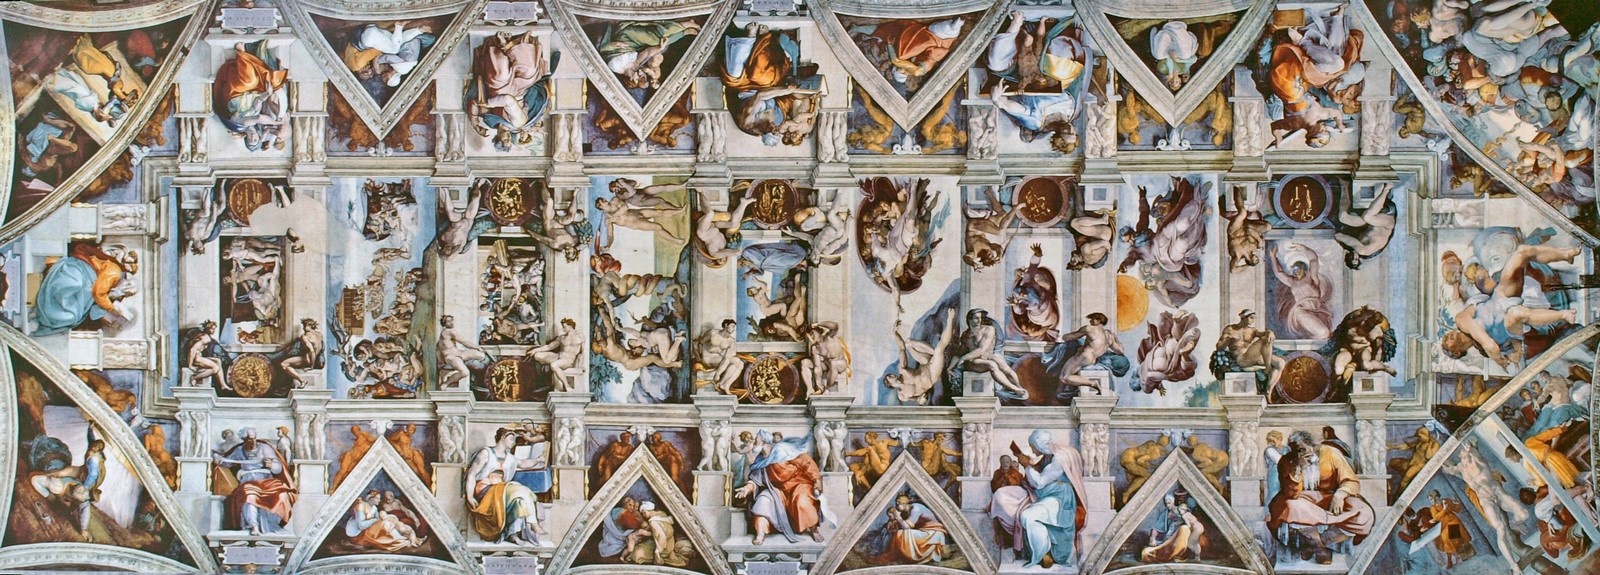 10 Things you didn't know about Michelangelo - Sheet8